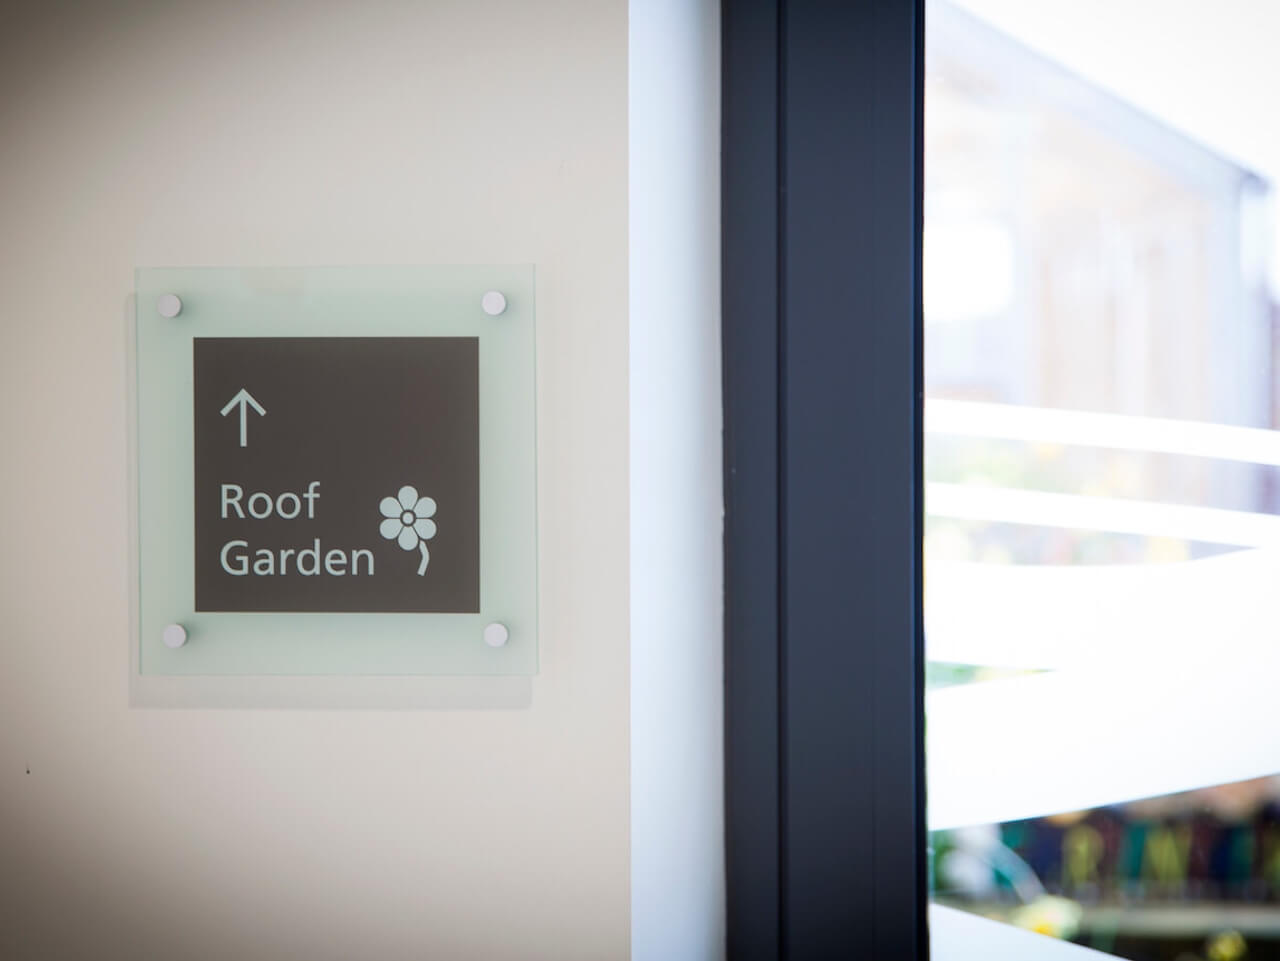 Wall mounted signage with floral pictogram to a roof garden